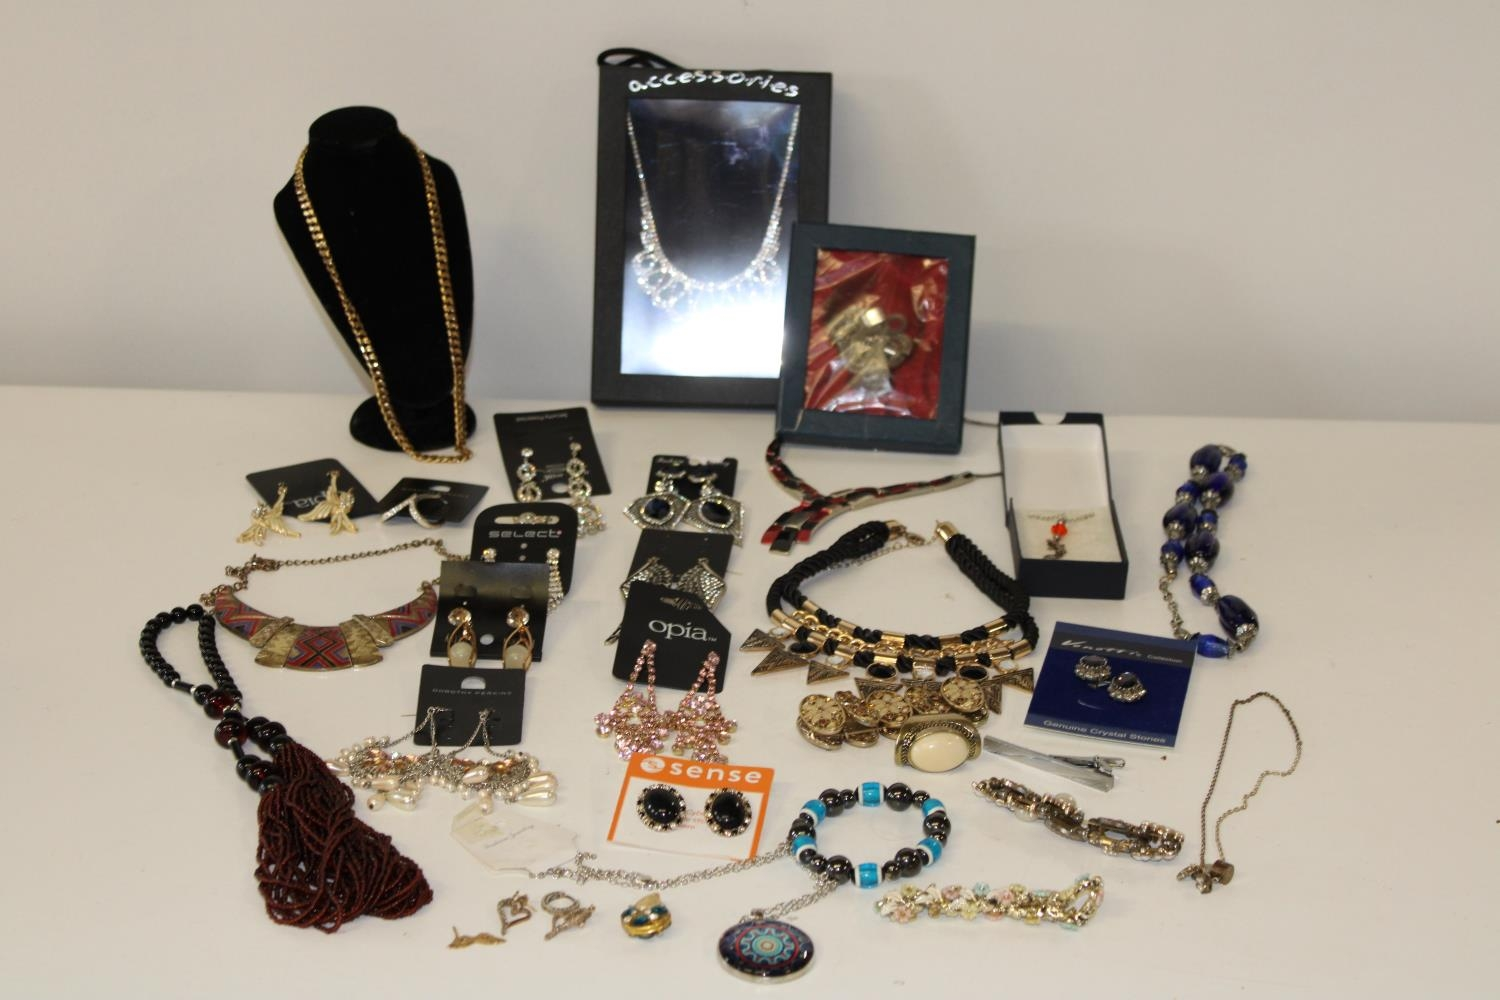 A job lot of new costume jewellery & other